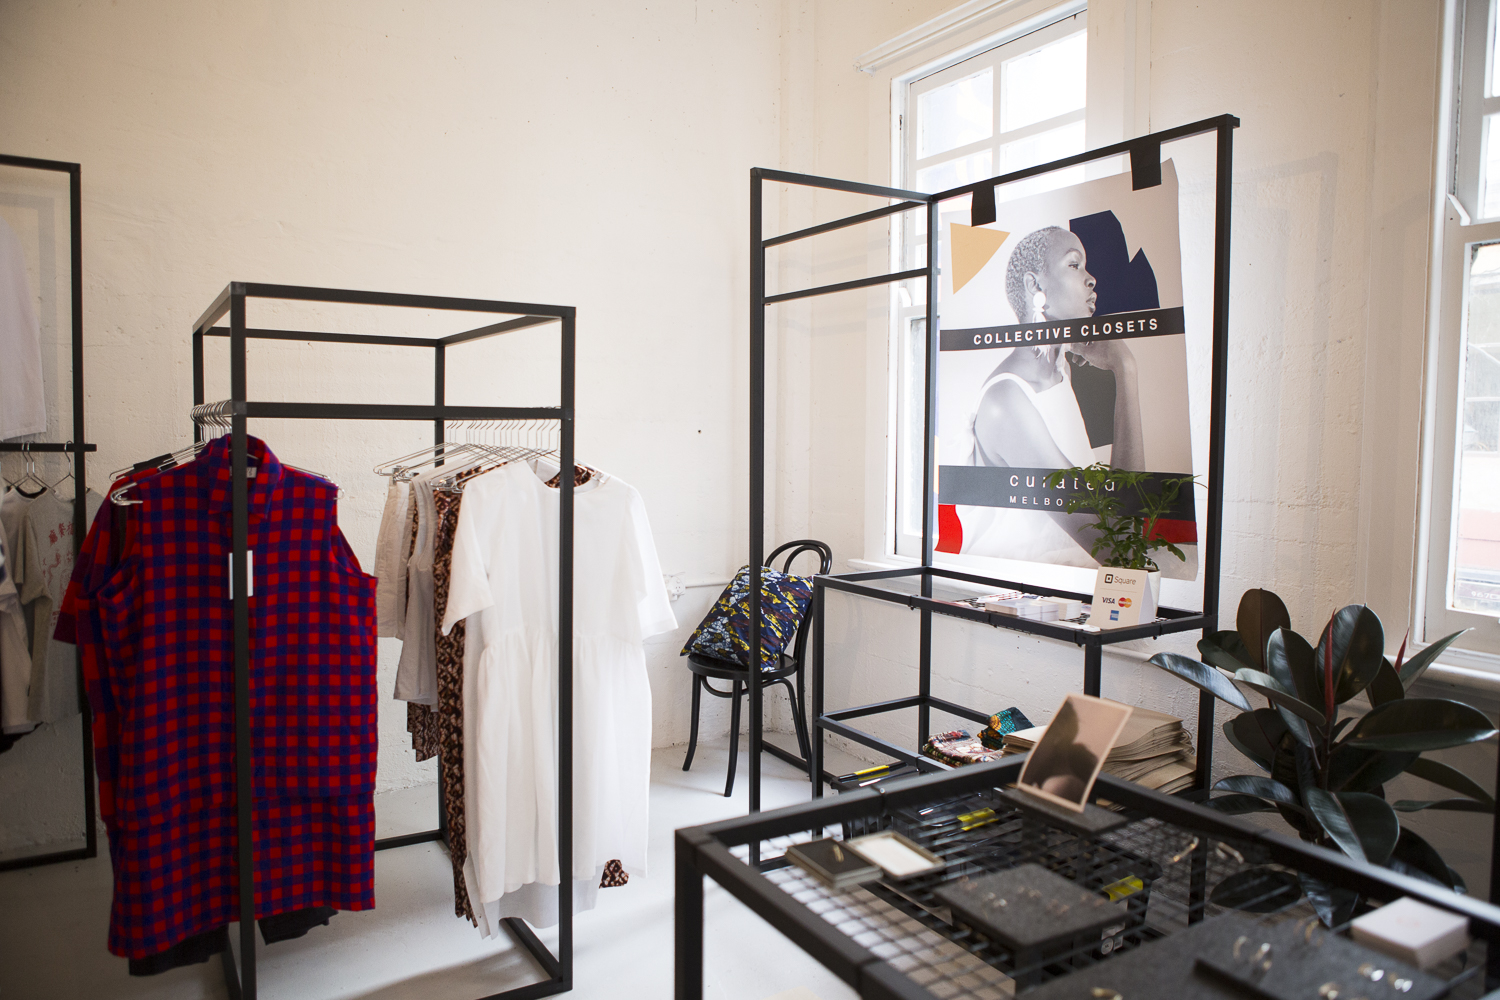 Collective Closets